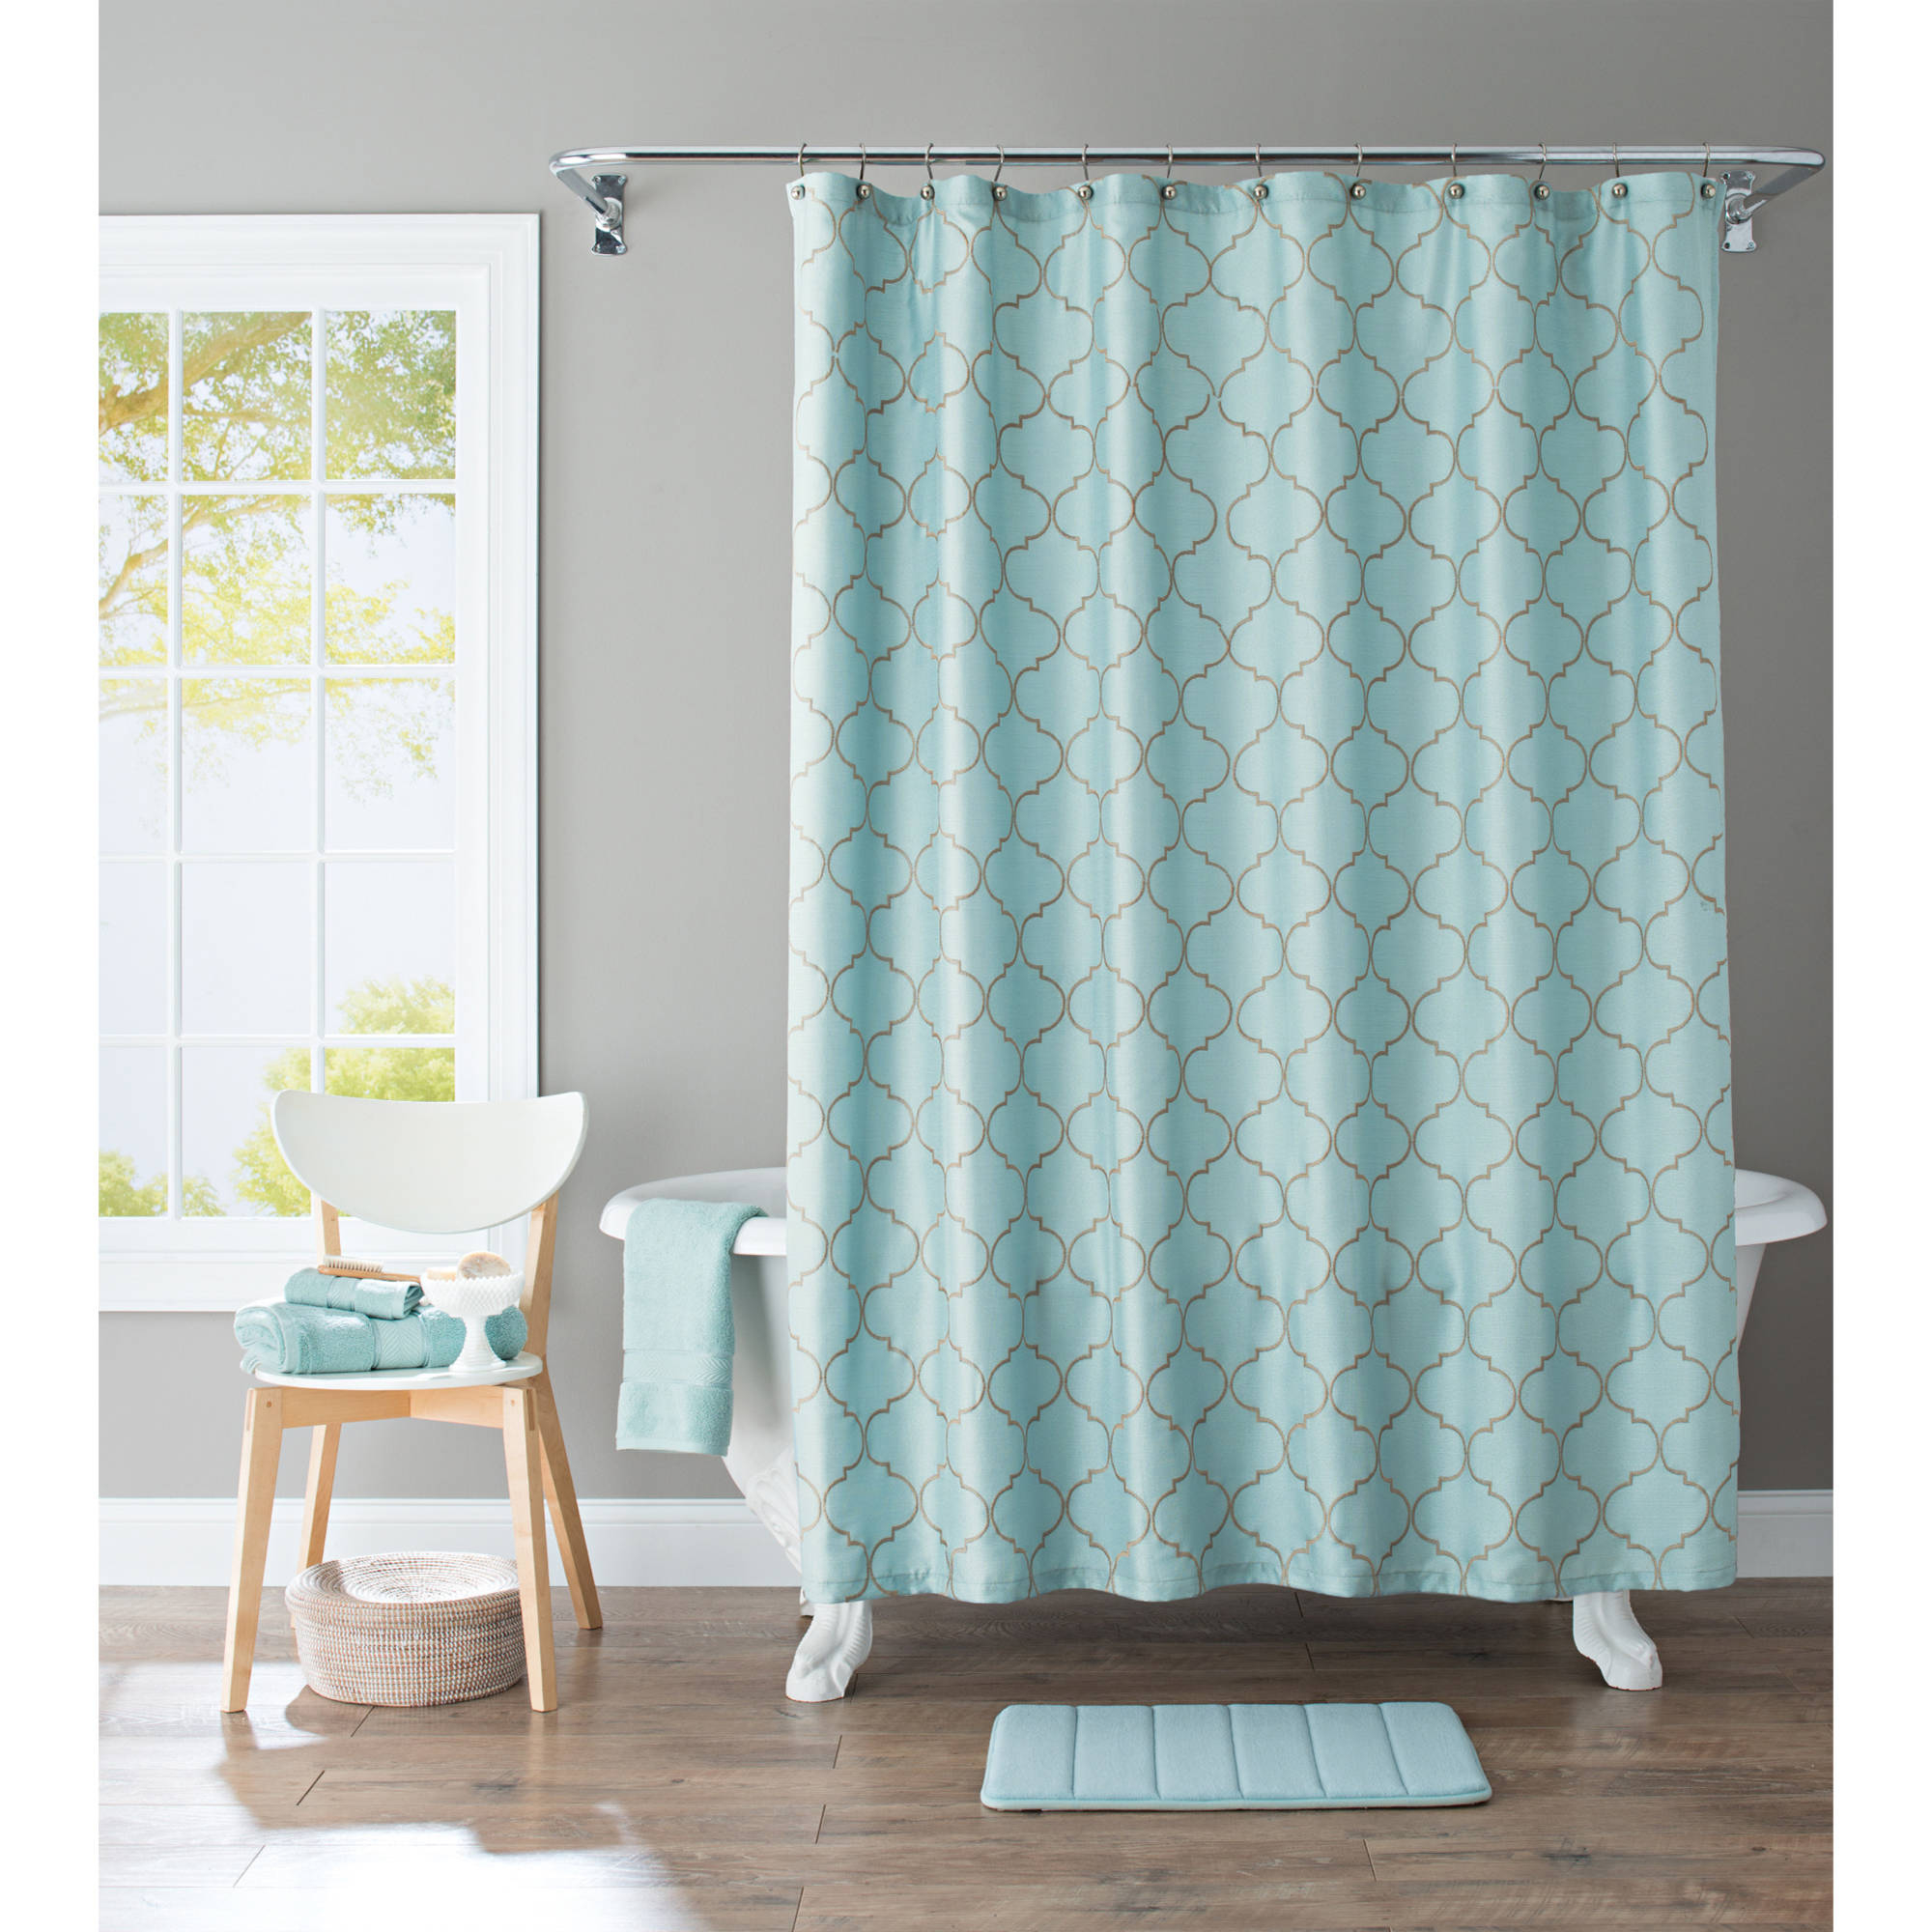 Better Homes And Gardens Shower Curtains Walmart For Proportions 2000 X